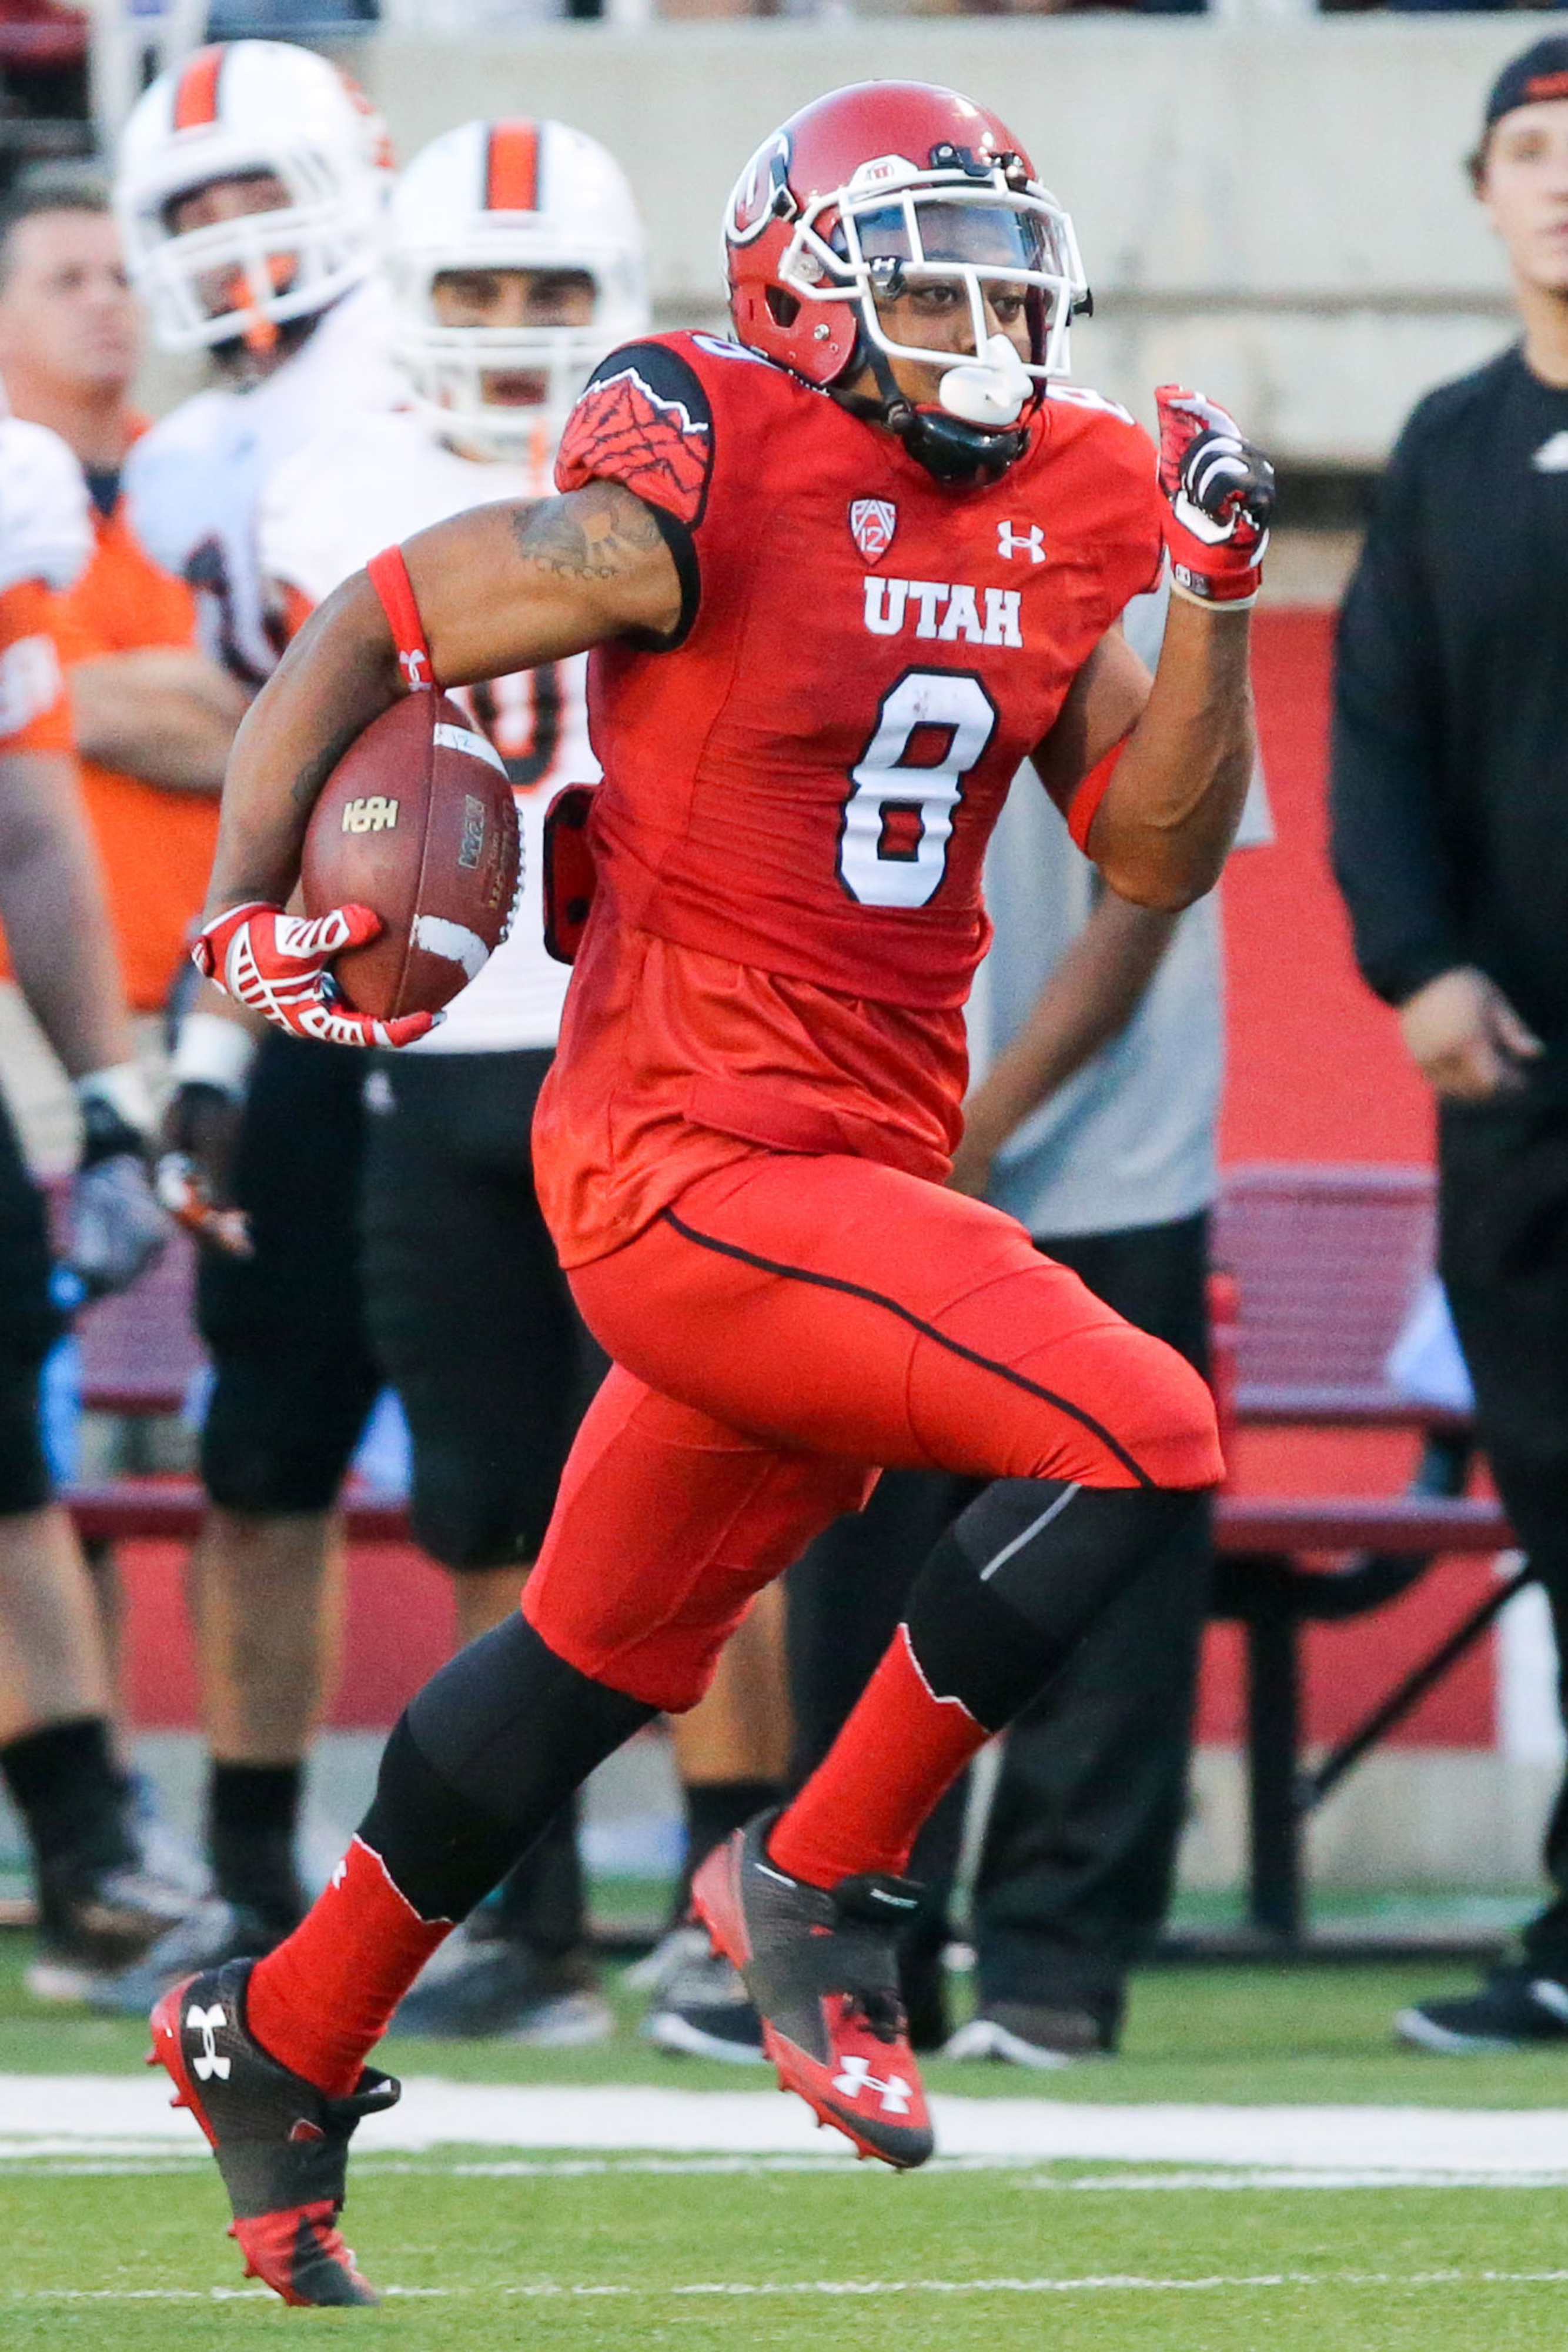 Kaelin Clay had a memorial debut as a Ute, with both a punt and kick return for a touchdown.